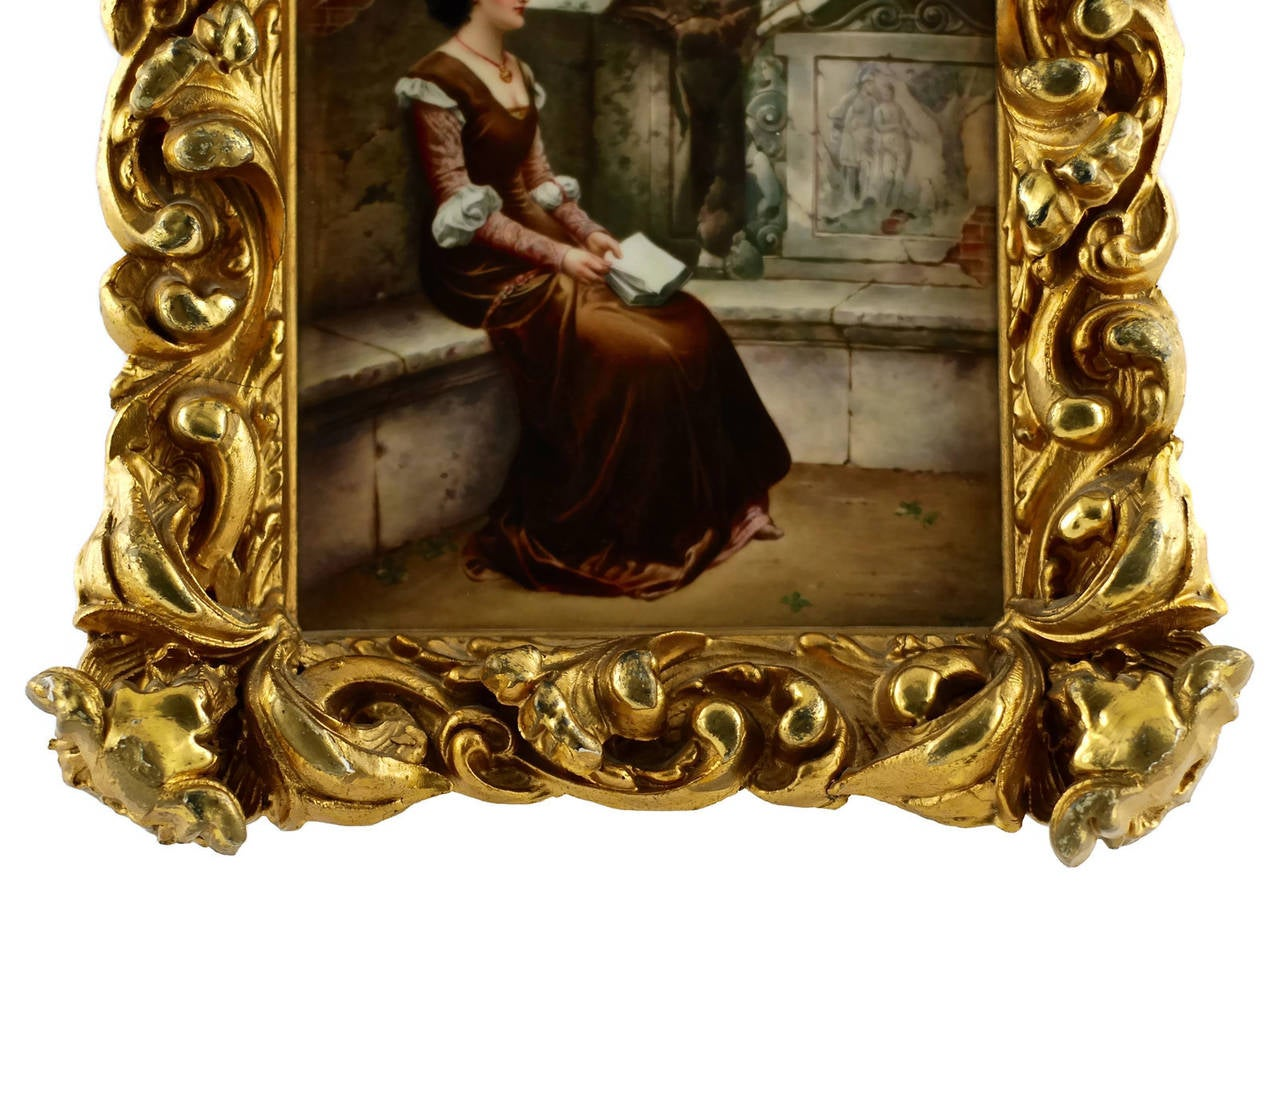 German 19th Century KPM Plaque Signed by Wagner in Giltwood Frame, 'Erinnerungen' For Sale